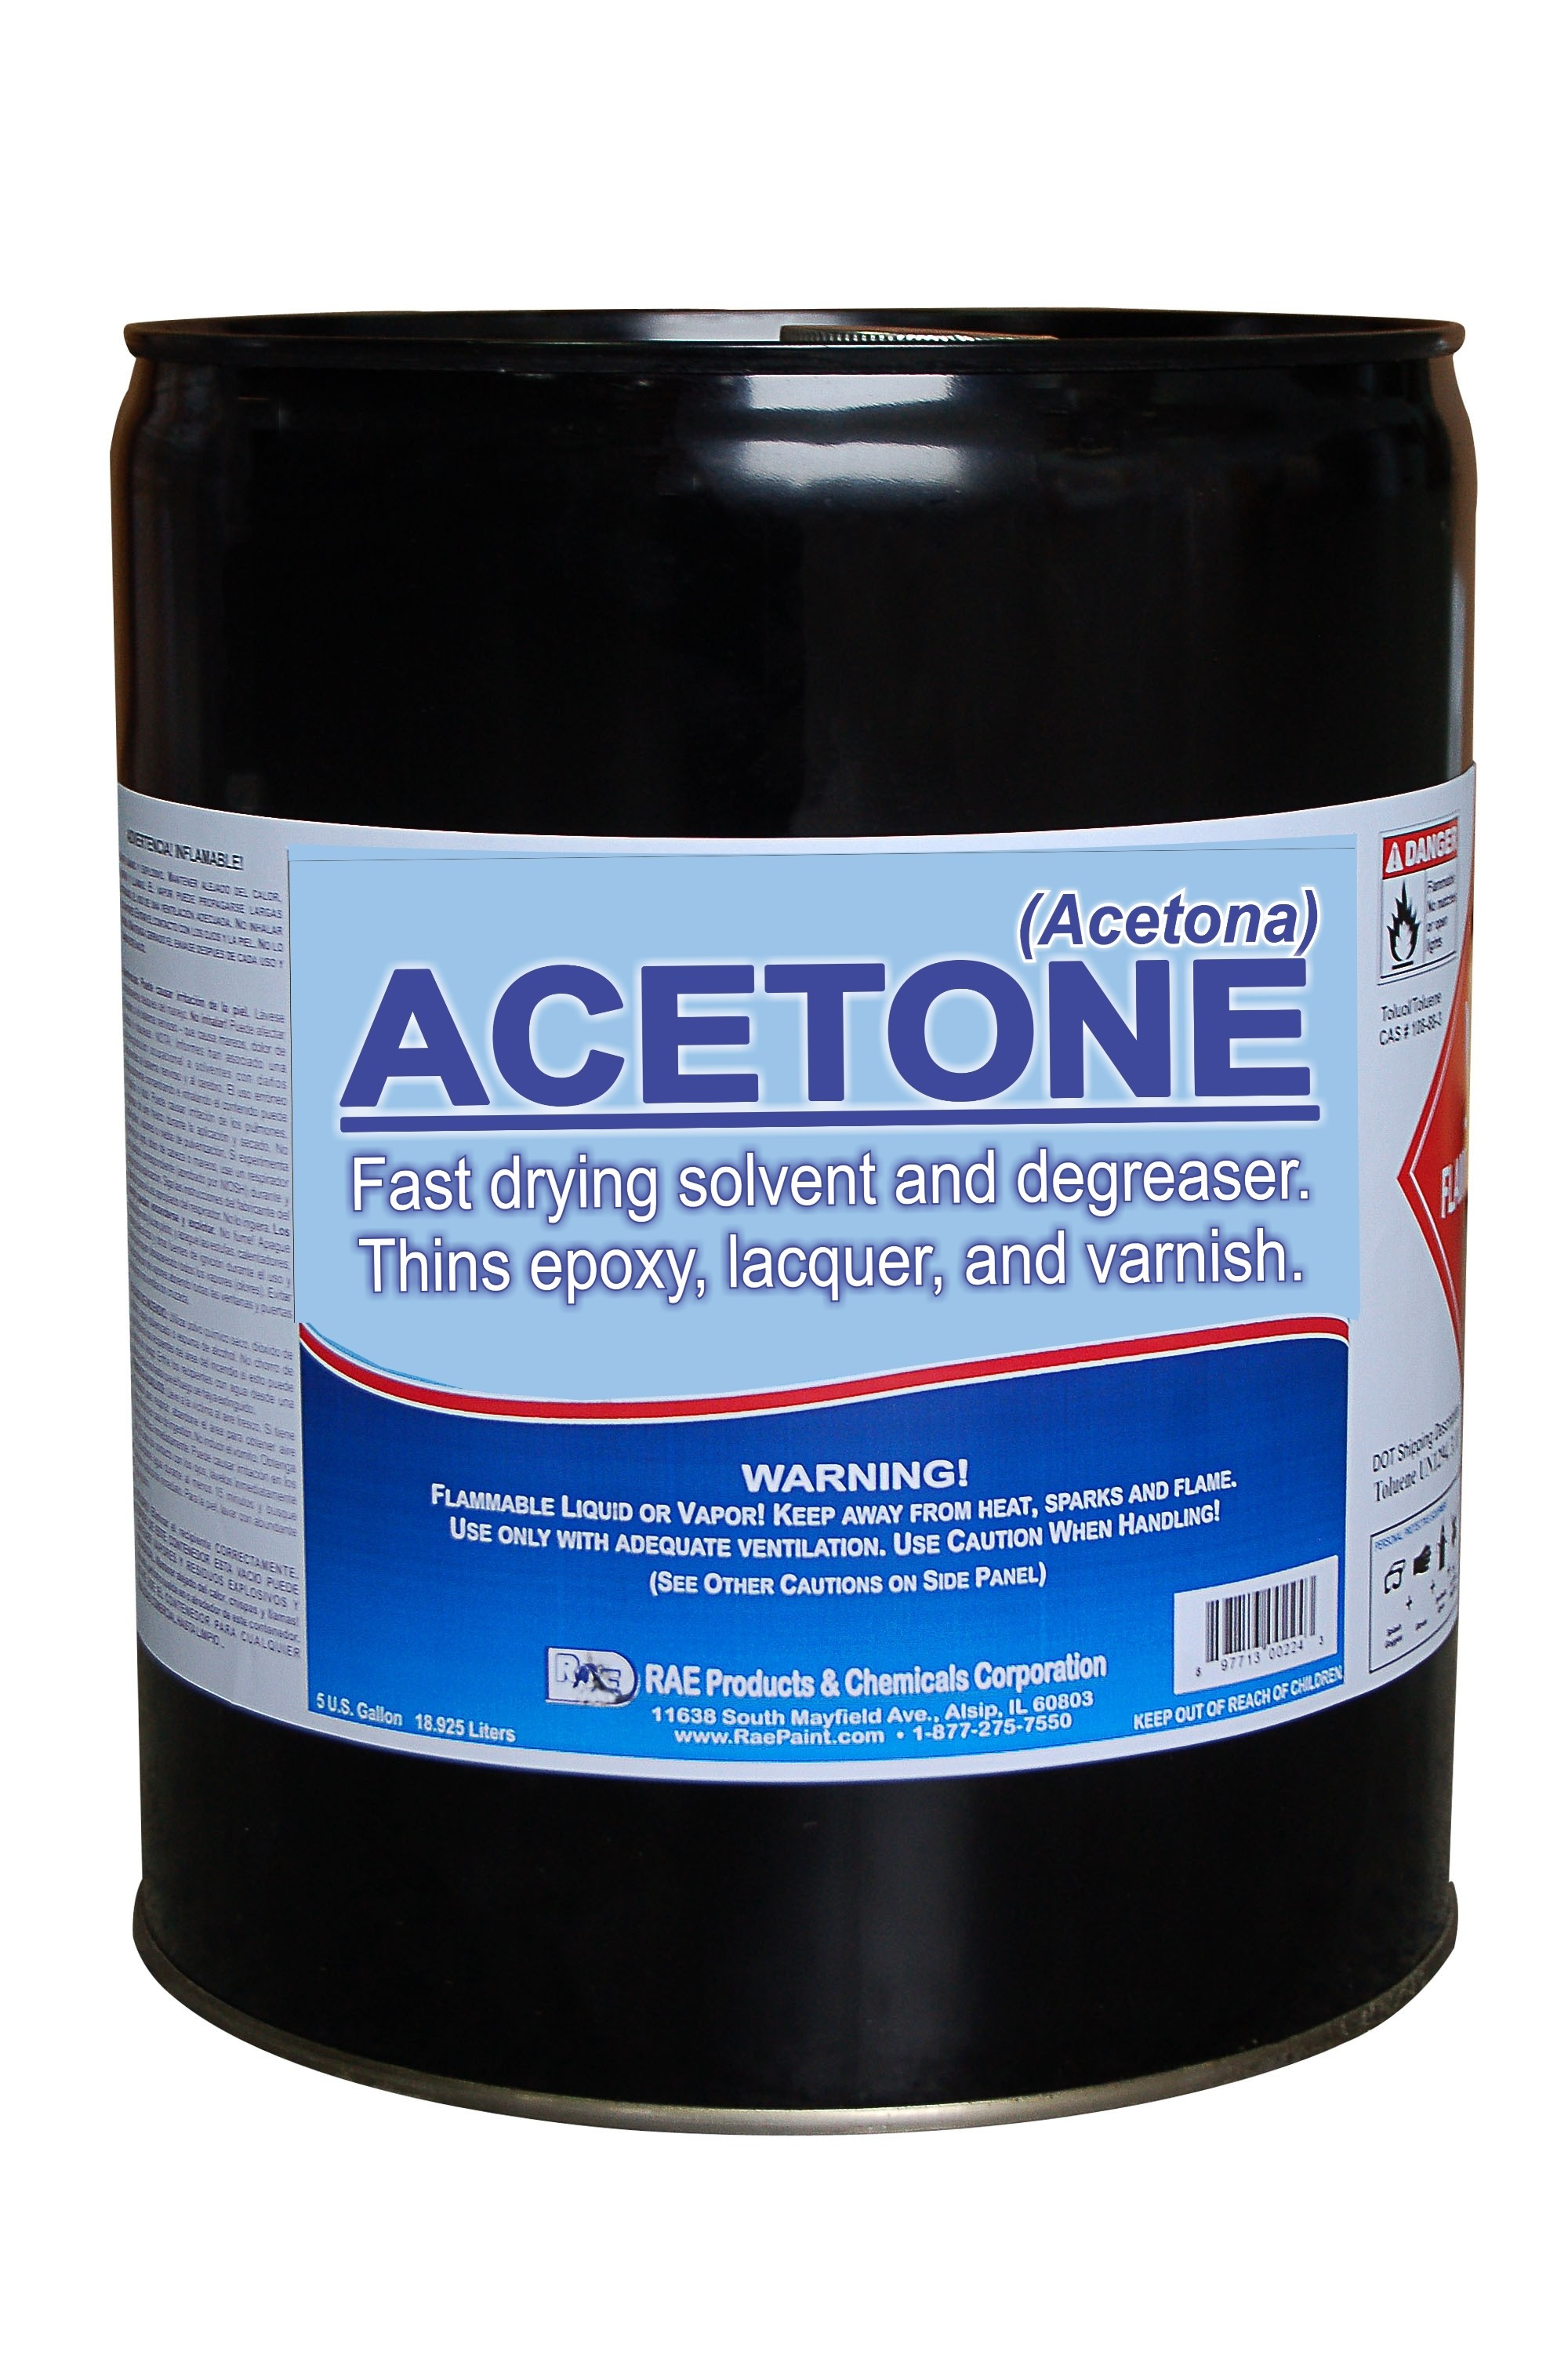 Acetone S 3 Fast Drying Solvent And Degreaser Thins